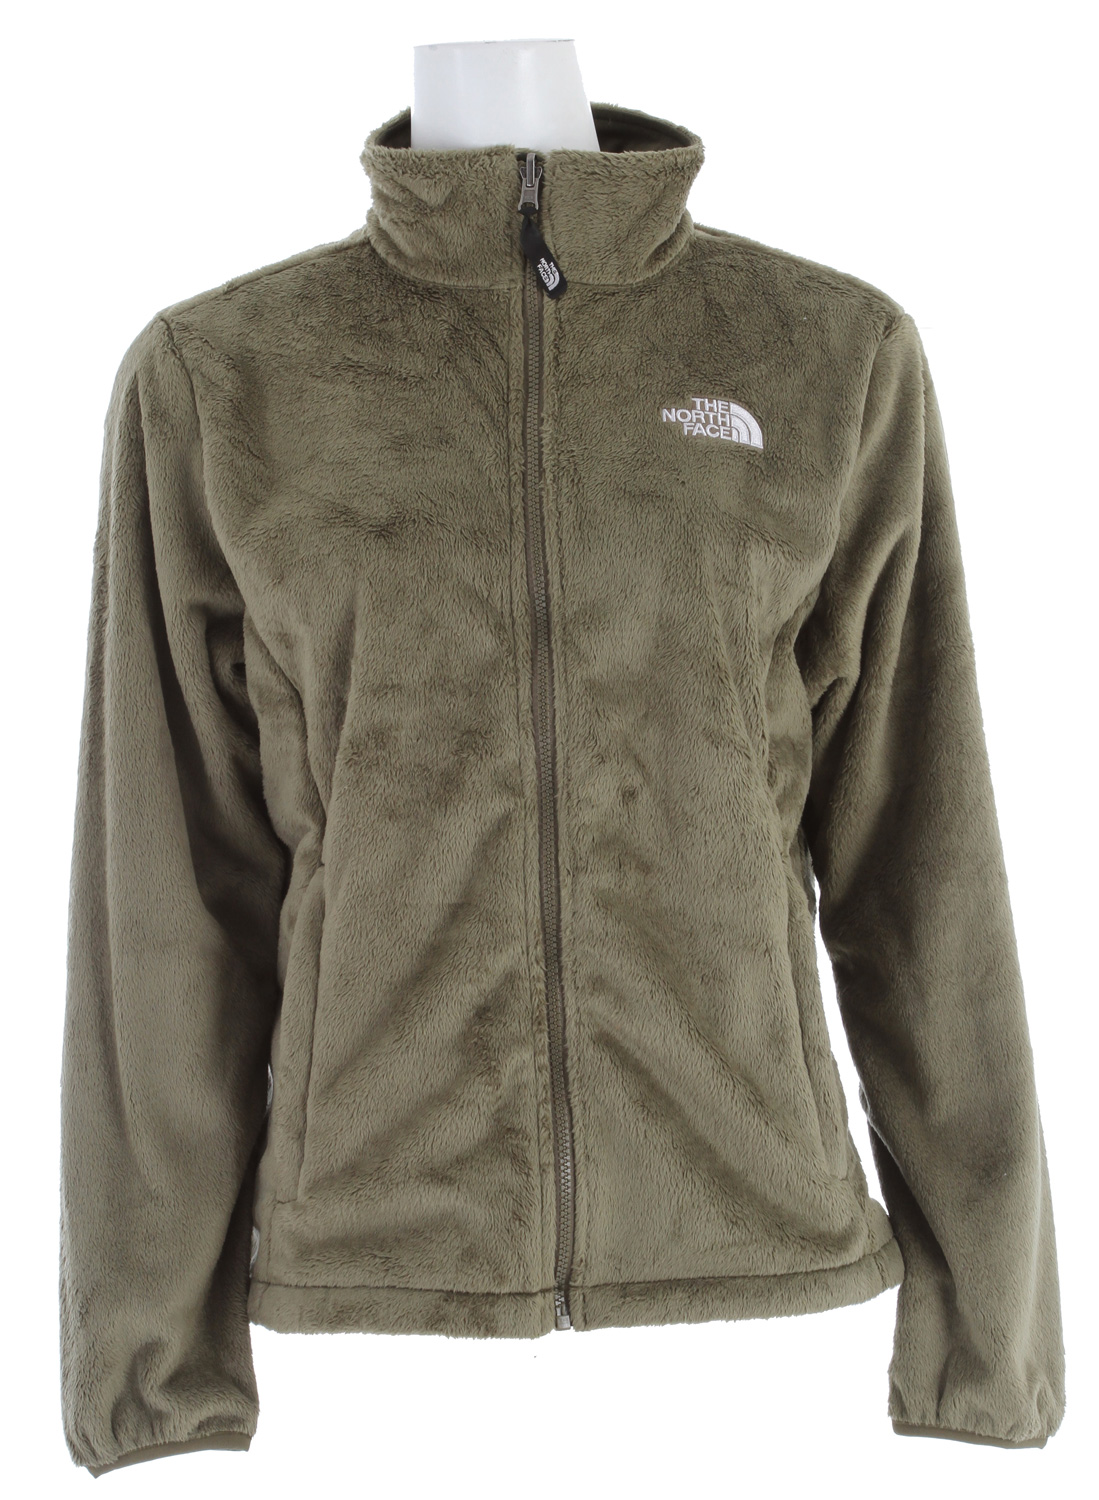 Durable and comfortable high loft zip-up fleece.Key Features of The North Face Osito Jacket: Standard fit Zip-in compatible Brushed collar lining Two hand pockets Concealable cuff snap-in Triclimate attachment Elastic-bound cuffs Hem cinch-cord / fabric/Silken fleece - $84.95